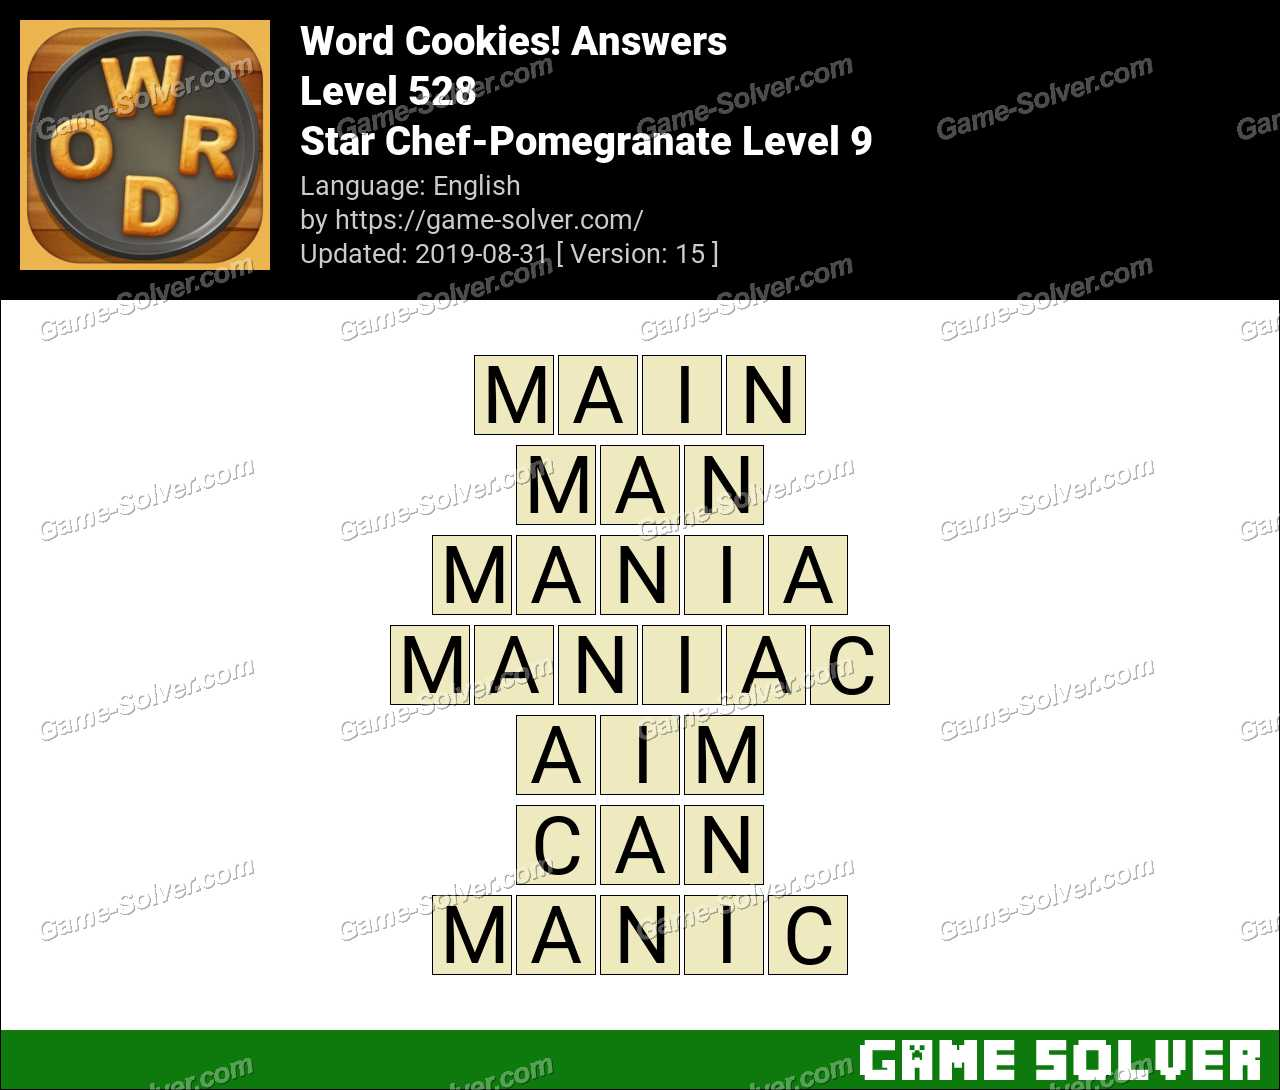 Word Cookies Star Chef-Pomegranate Level 9 Answers